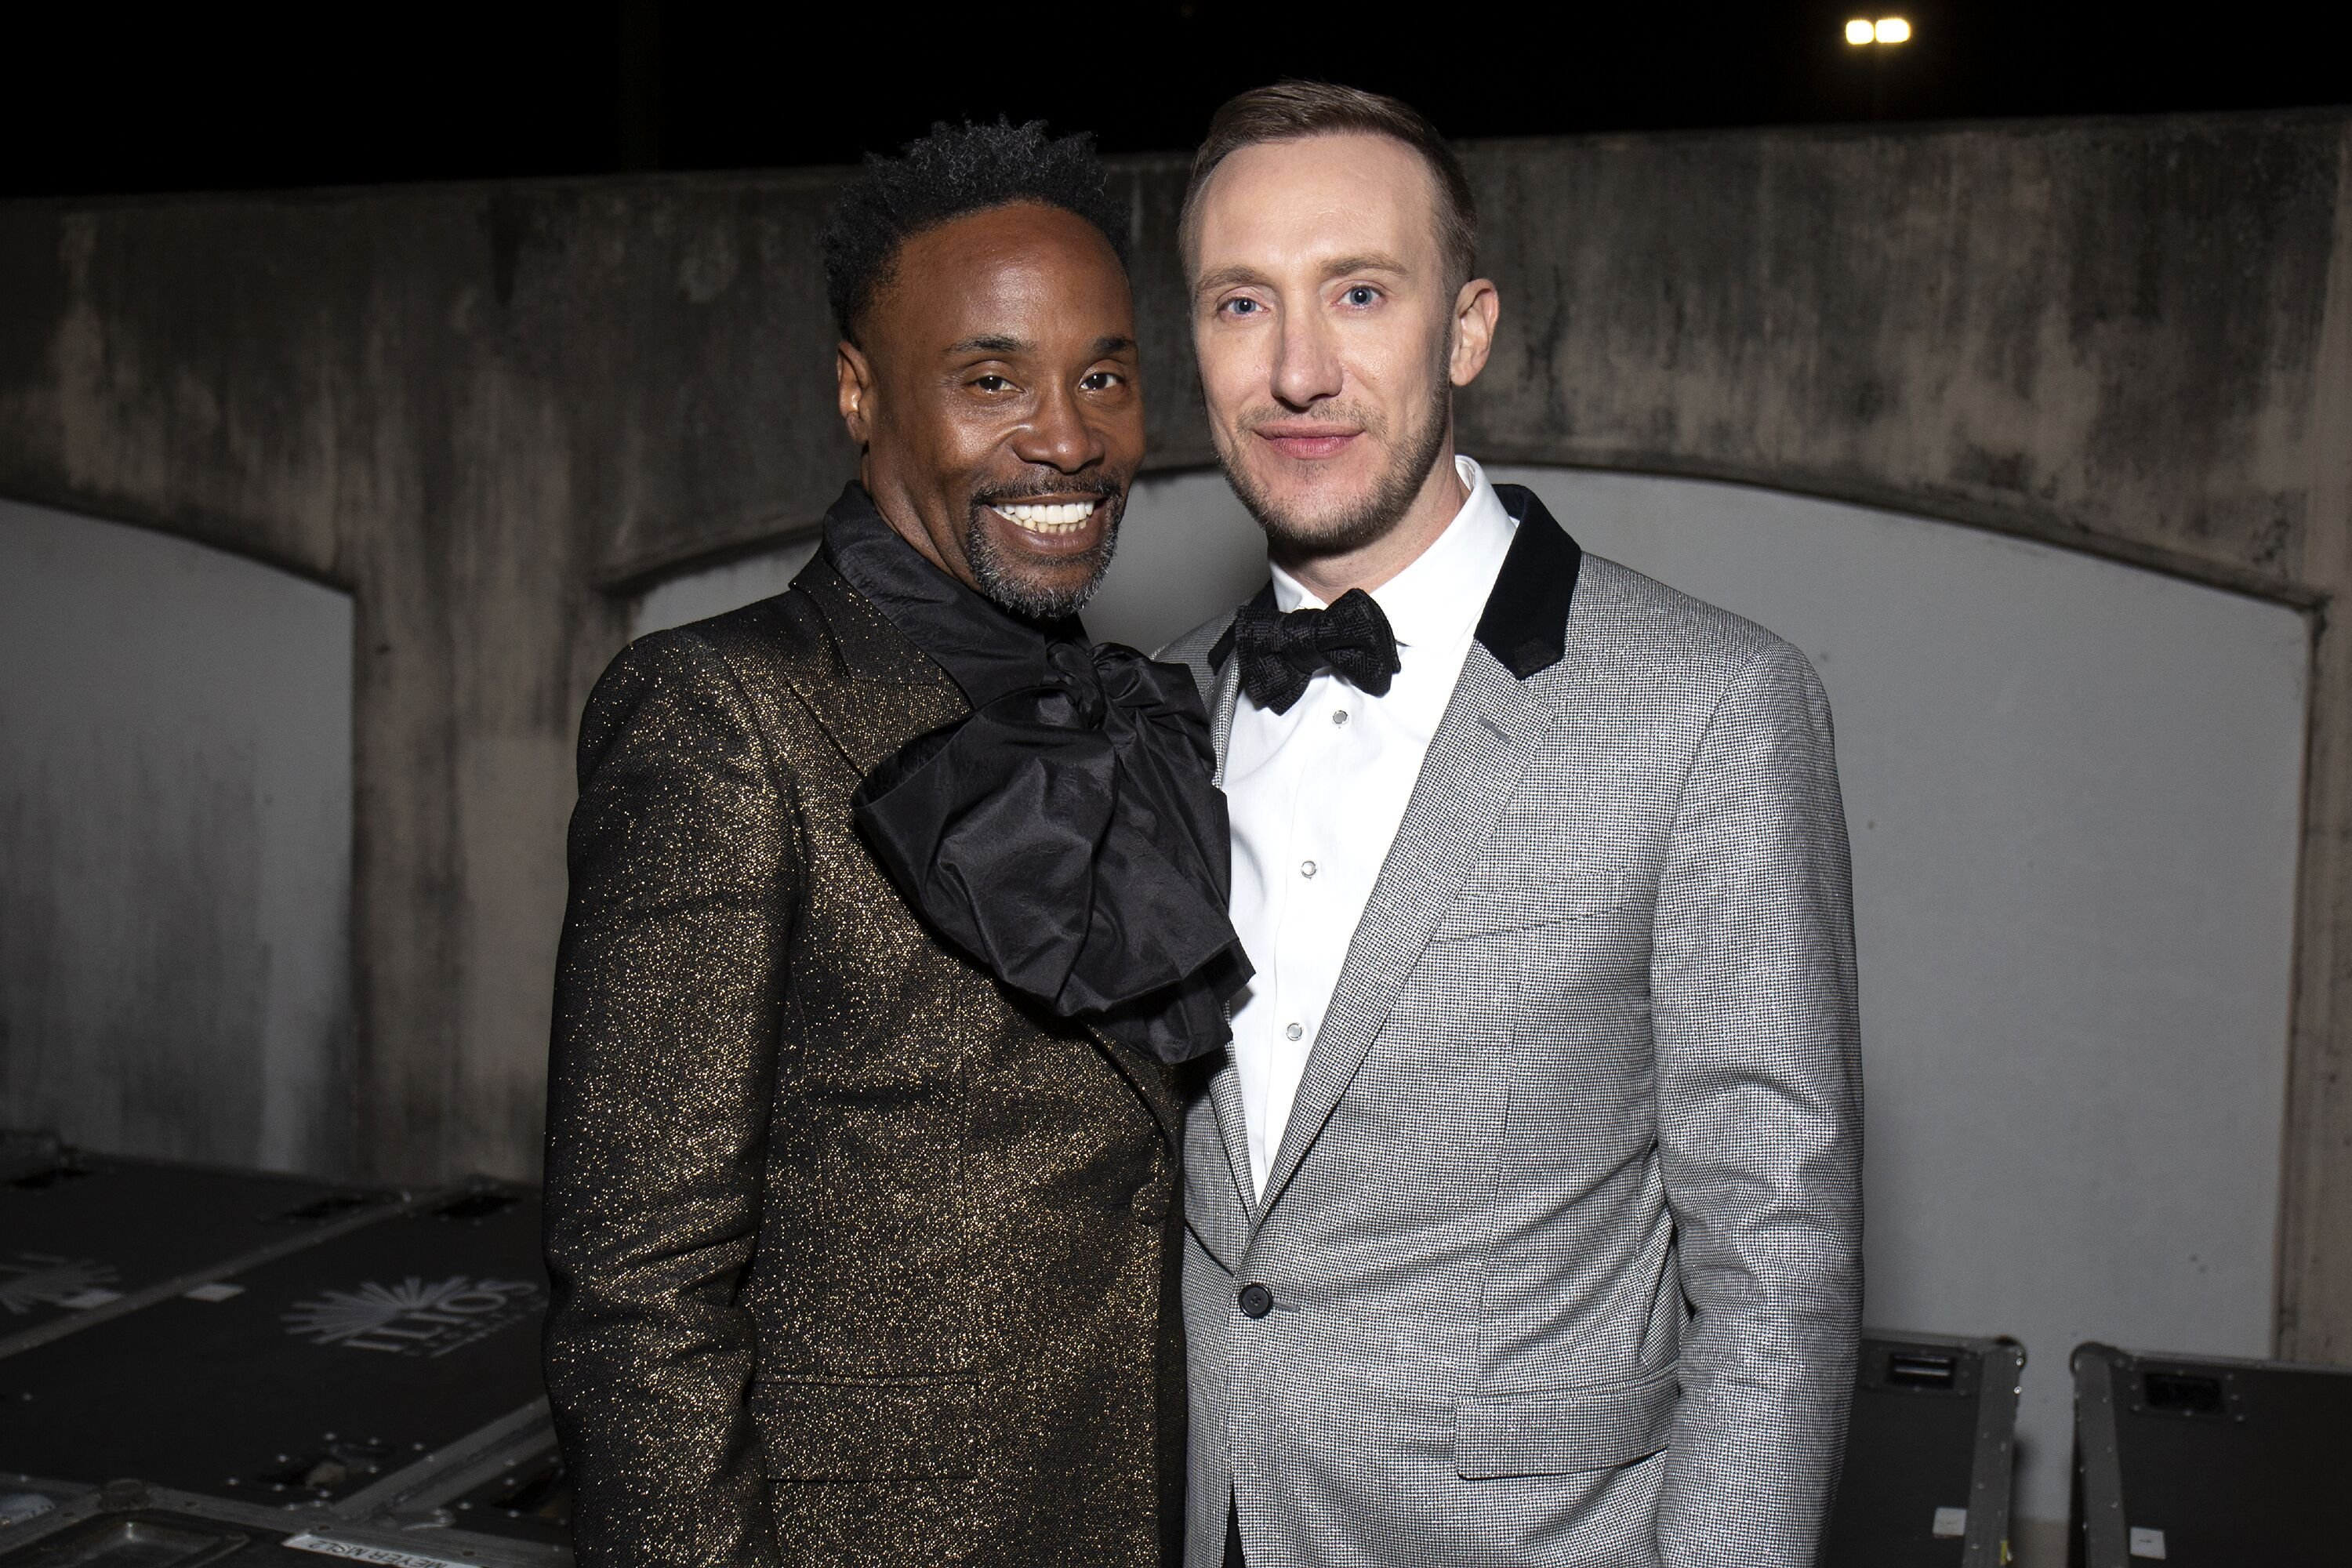 Billy Porter and Adam Smith attend a red carpet event together | Source: Getty Images/GlobalImagesUkraine